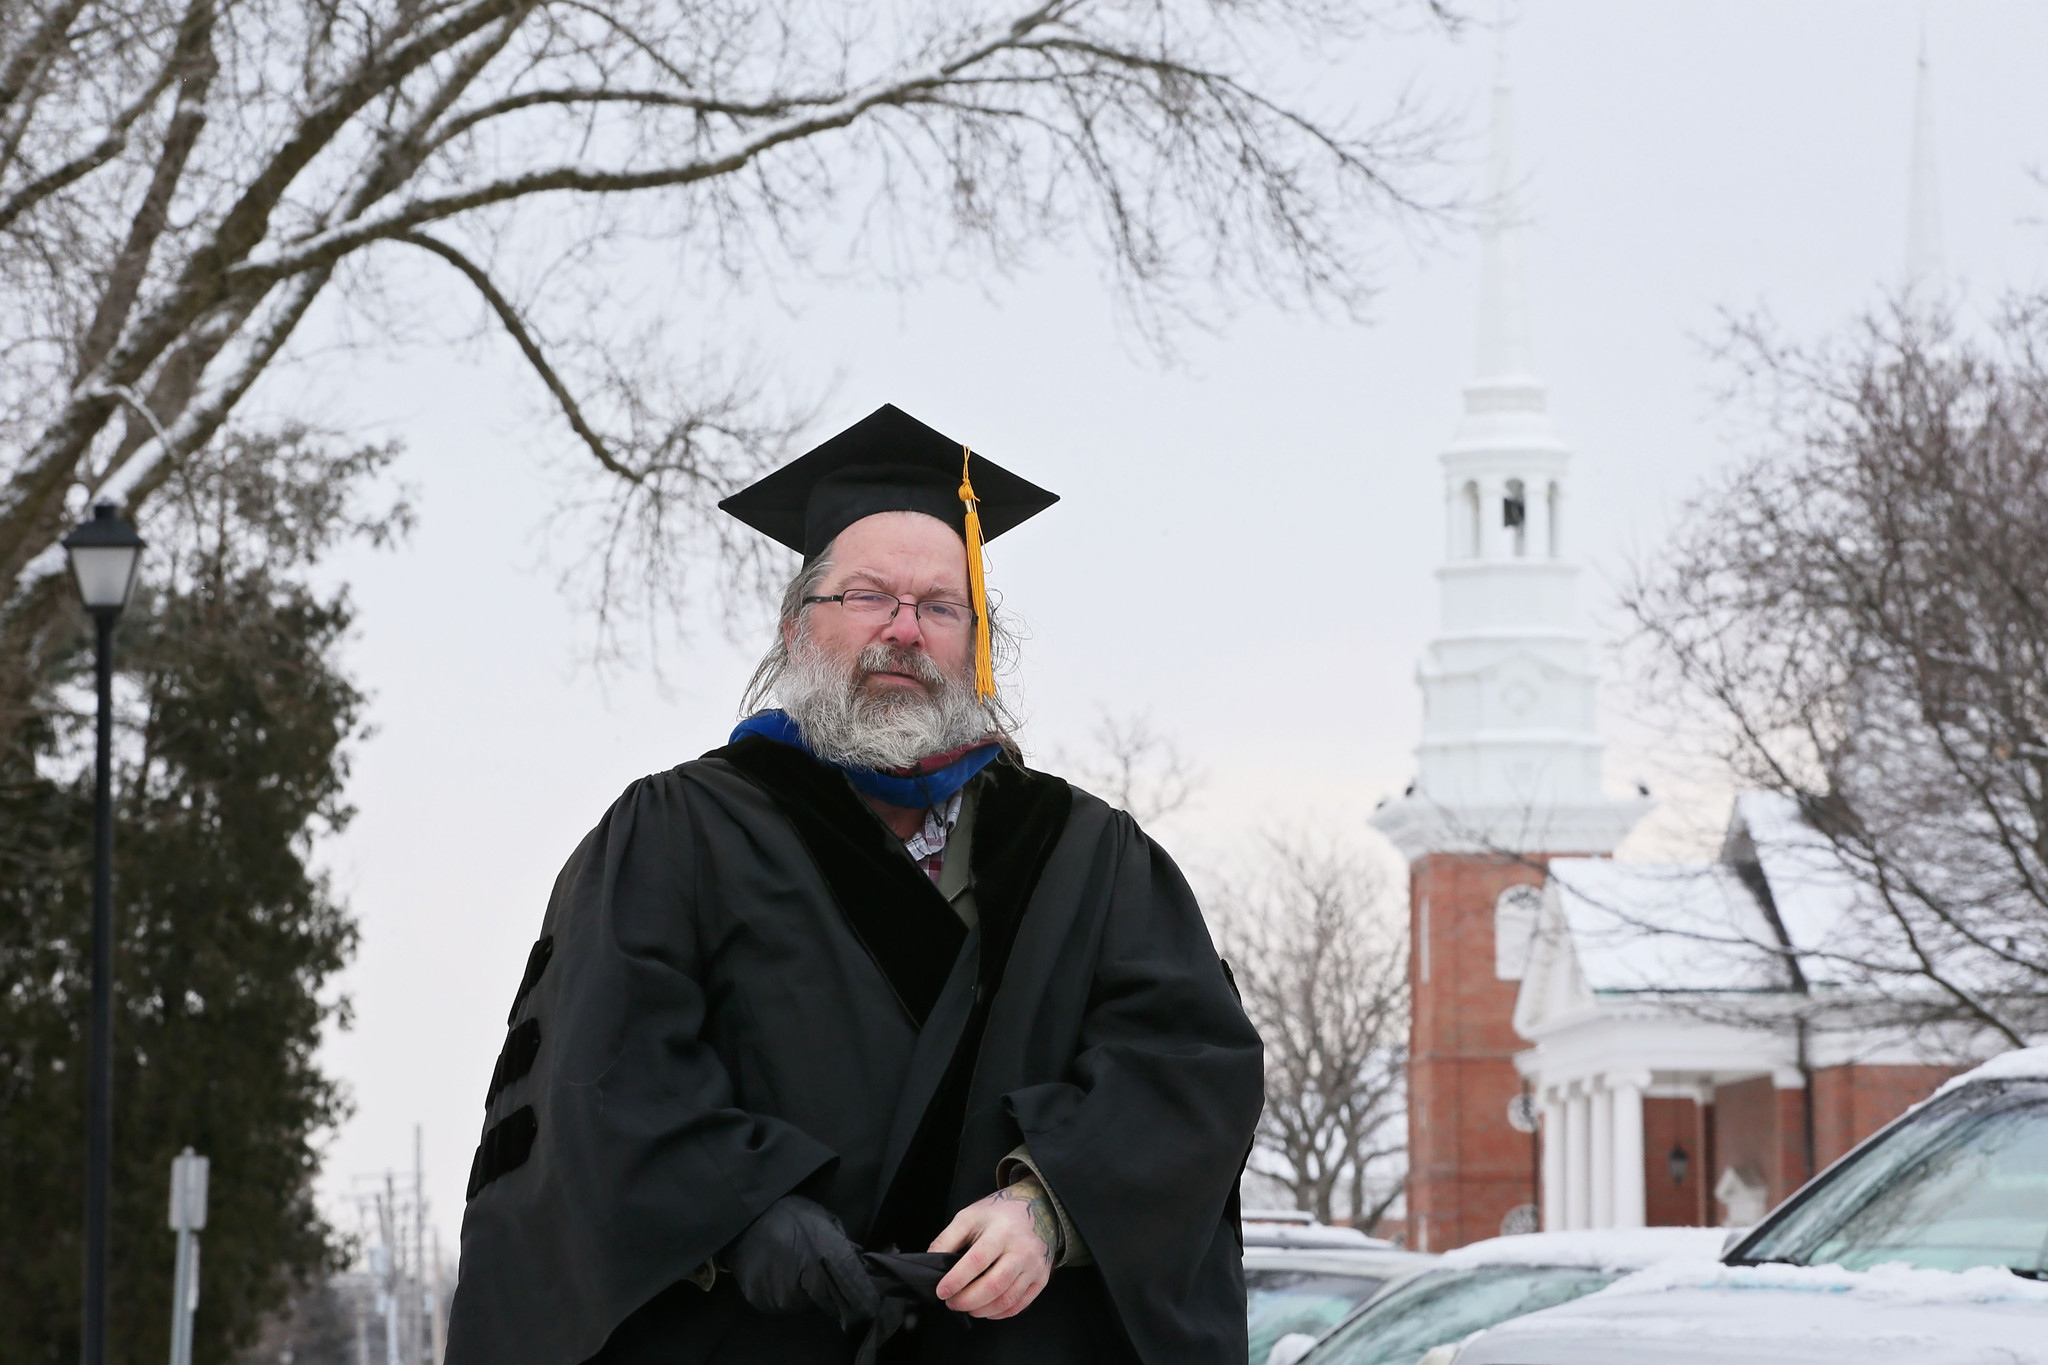 Wheaton College professor wearing cap, gown in support of colleague ...